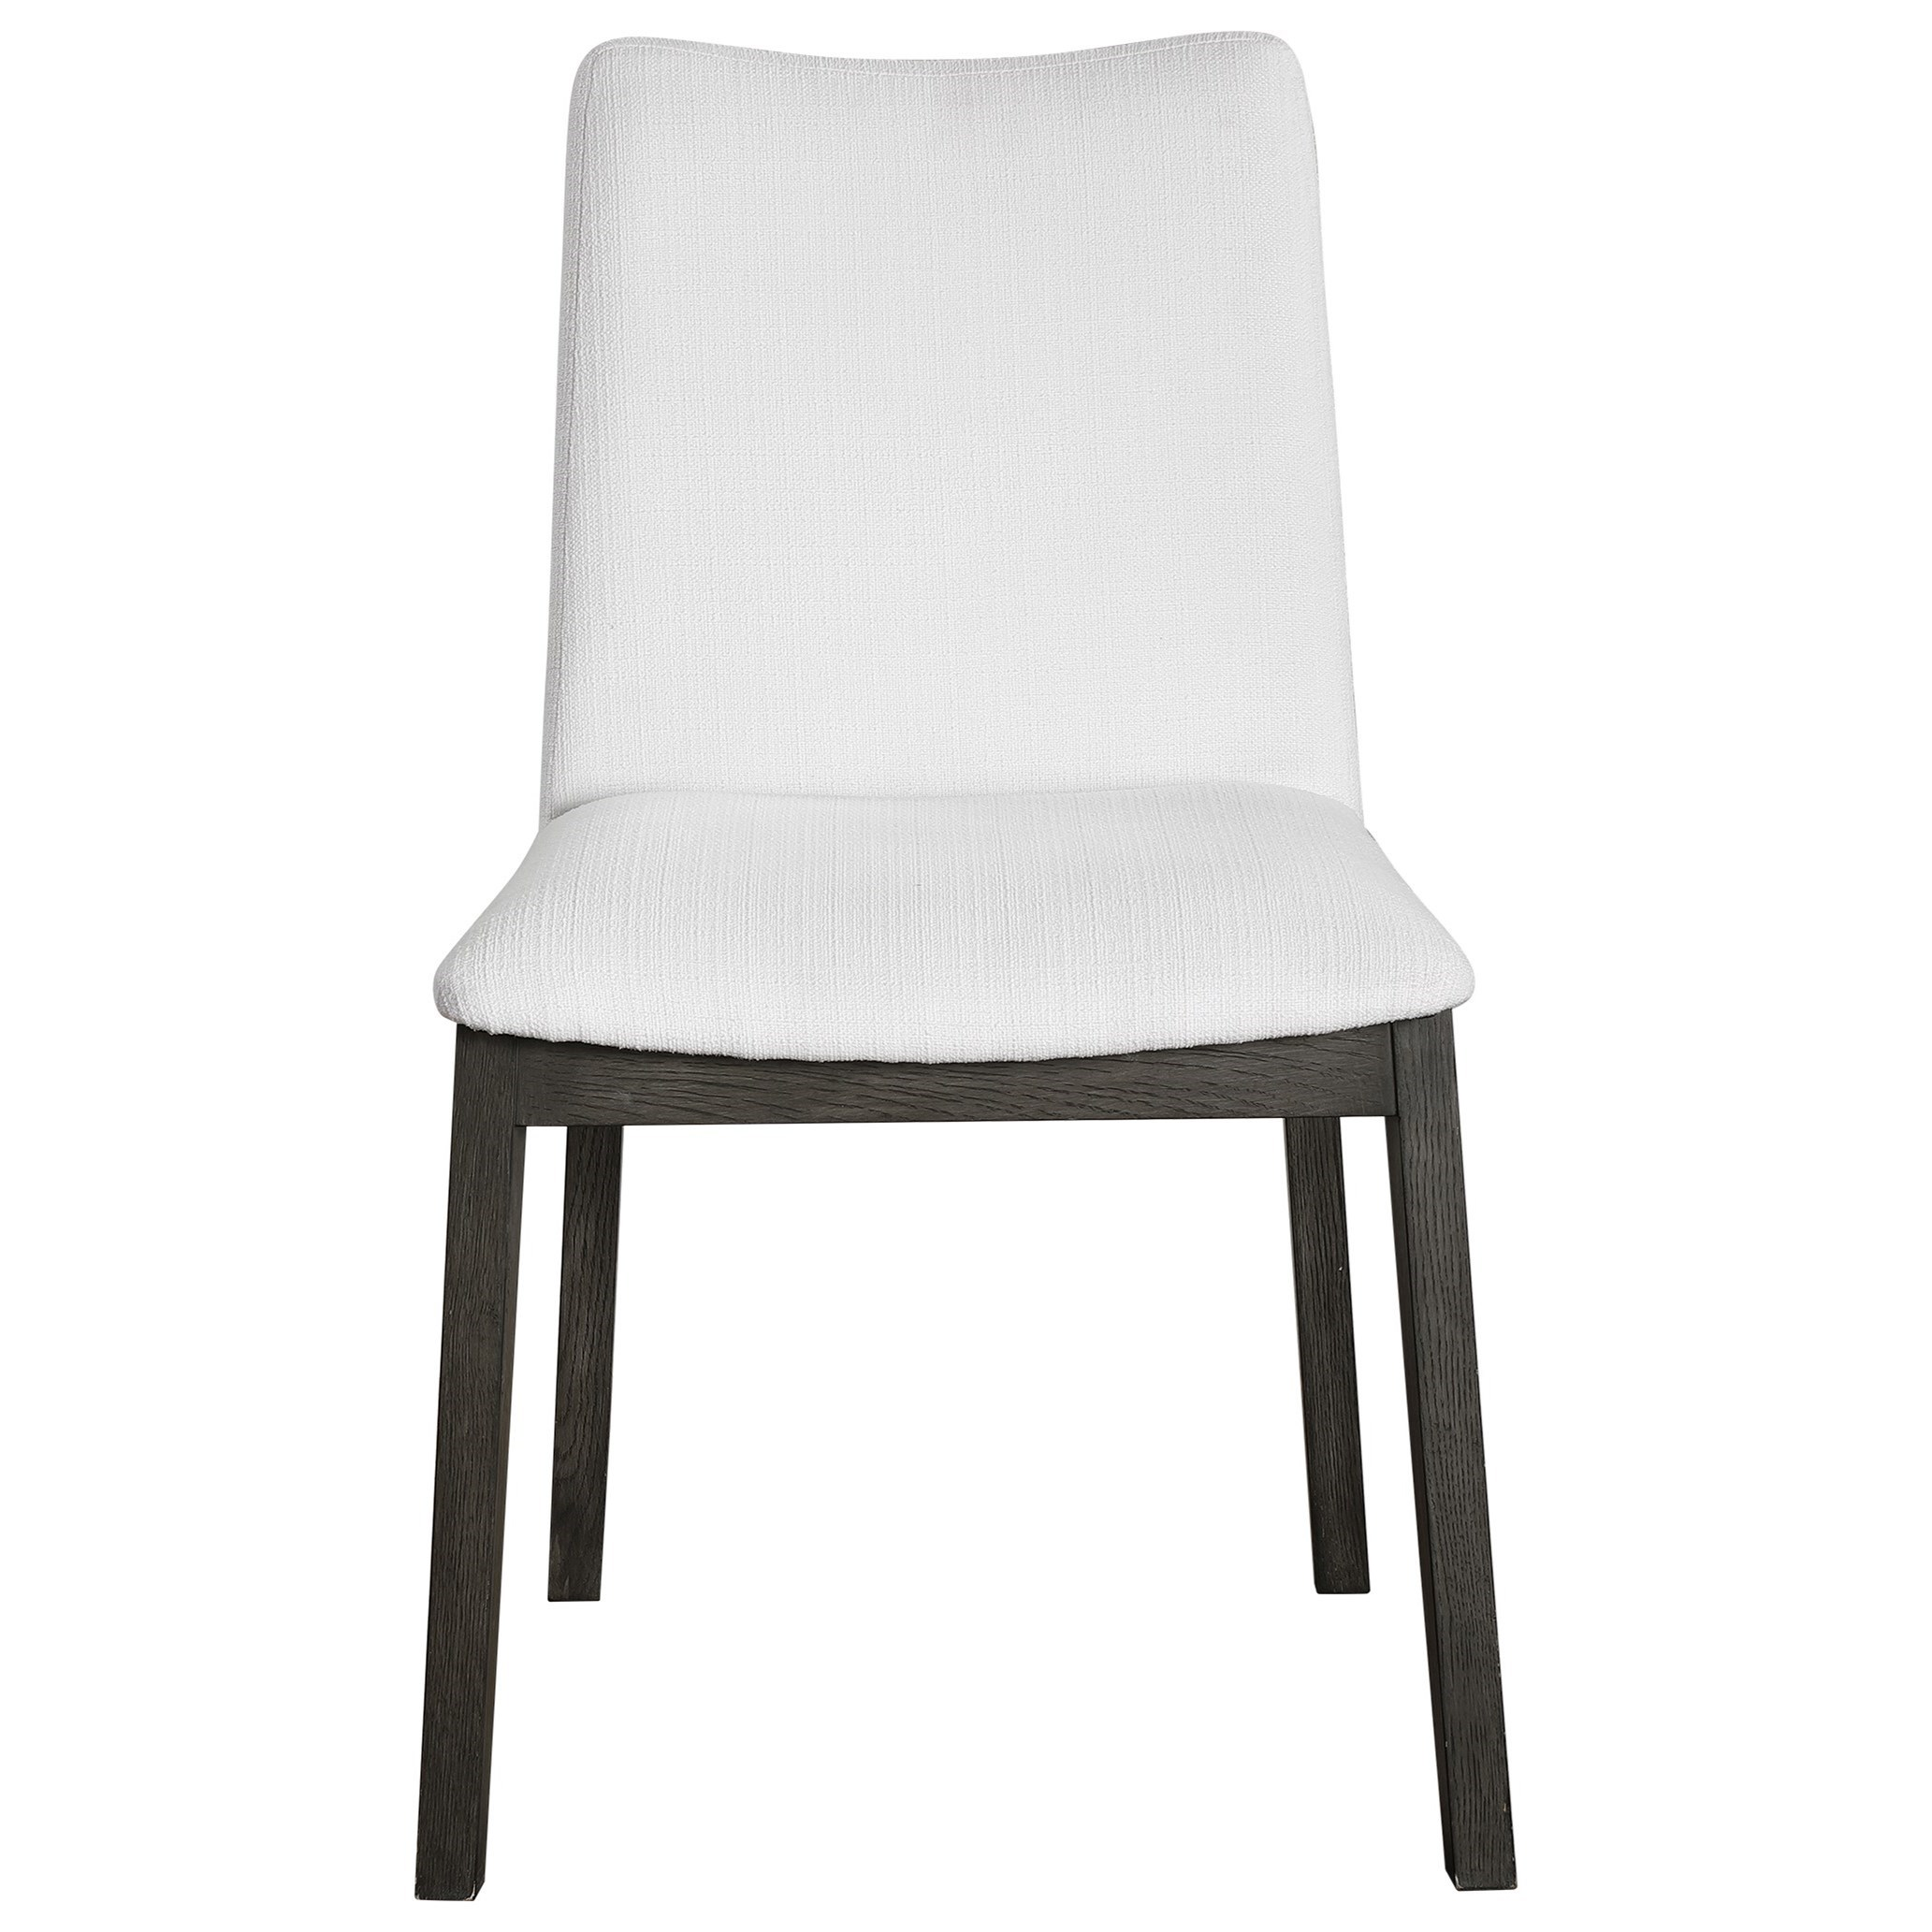 Accent Furniture - Accent Chairs Delano White Armless Chair S/2 by Uttermost at Mueller Furniture